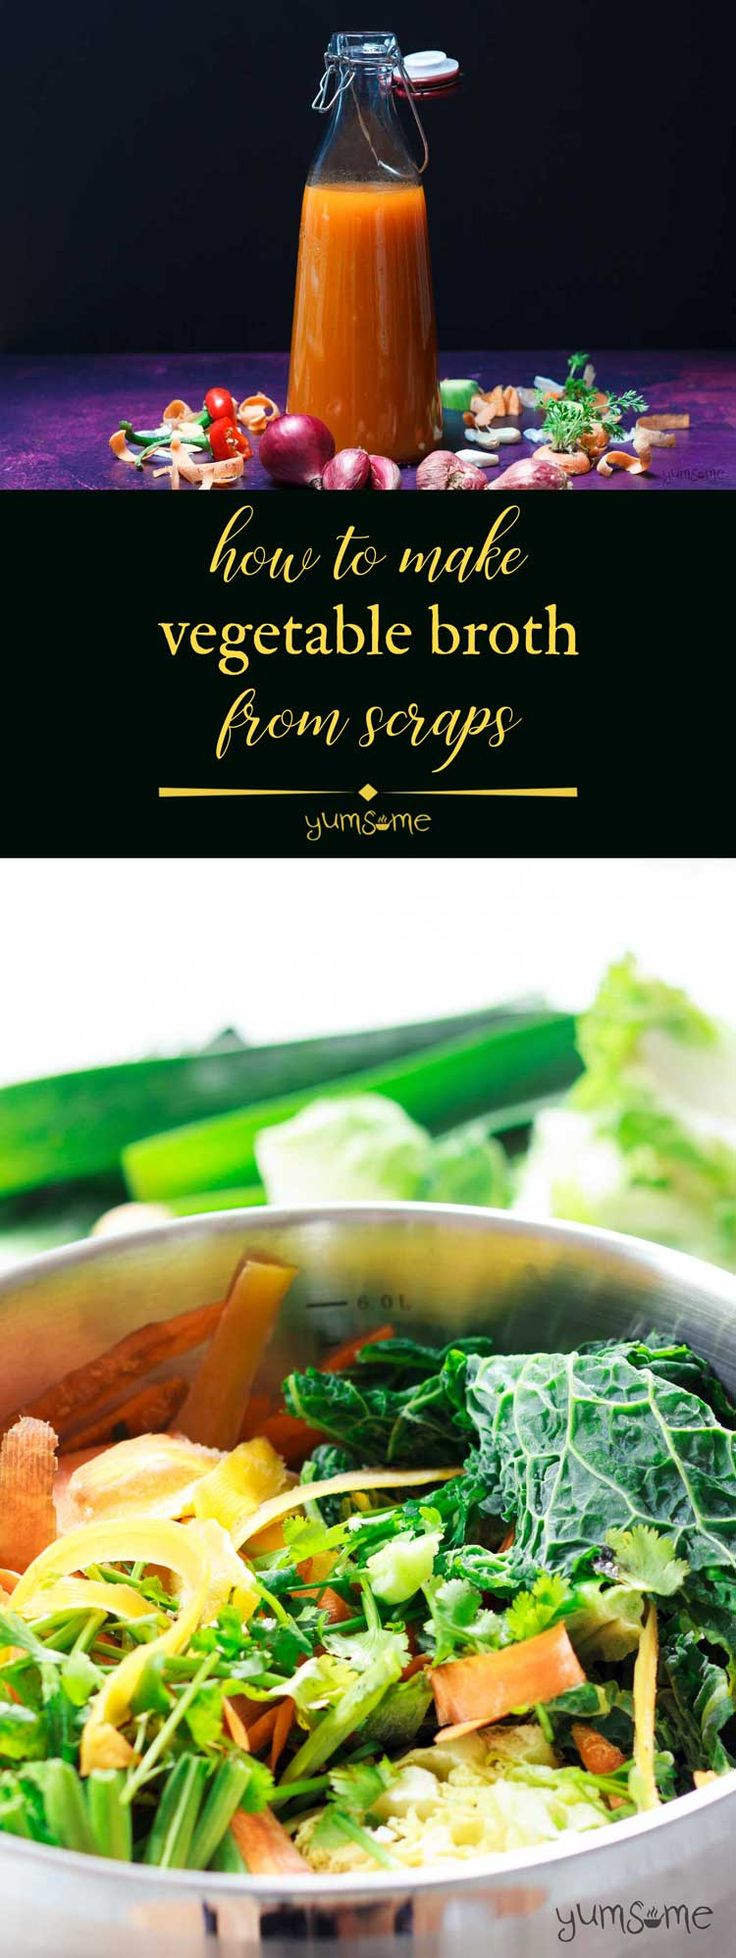 This #vegetable #broth is really simple to make, and requires justone pot, a bag of veggie scraps, and a few herbs. And yes, it's completely #vegan! | yumsome.com via @yums0me